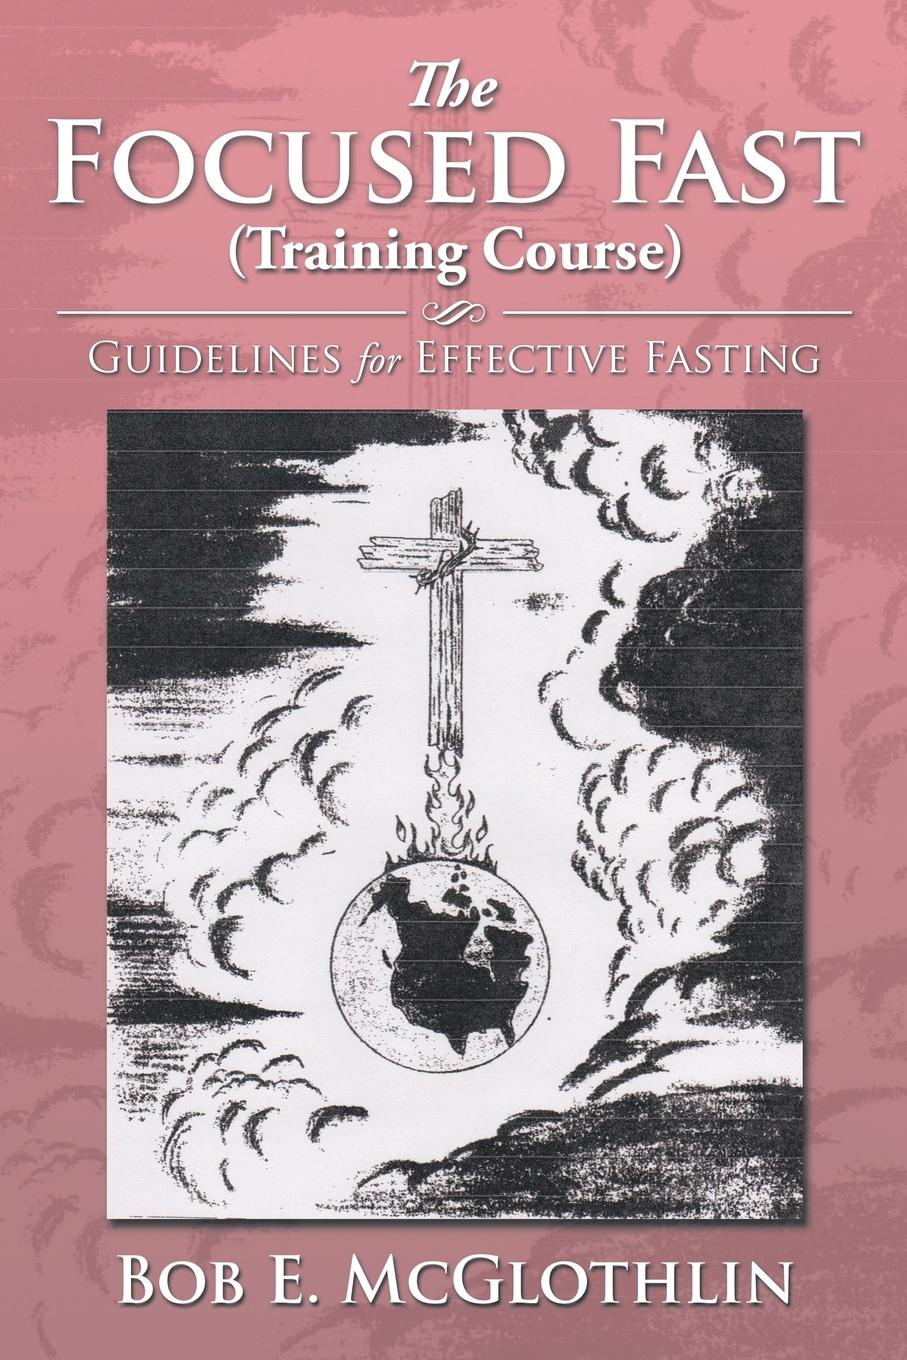 Bob E. McGlothlin The Focused Fast (Training Course). Guidelines for Effective Fasting